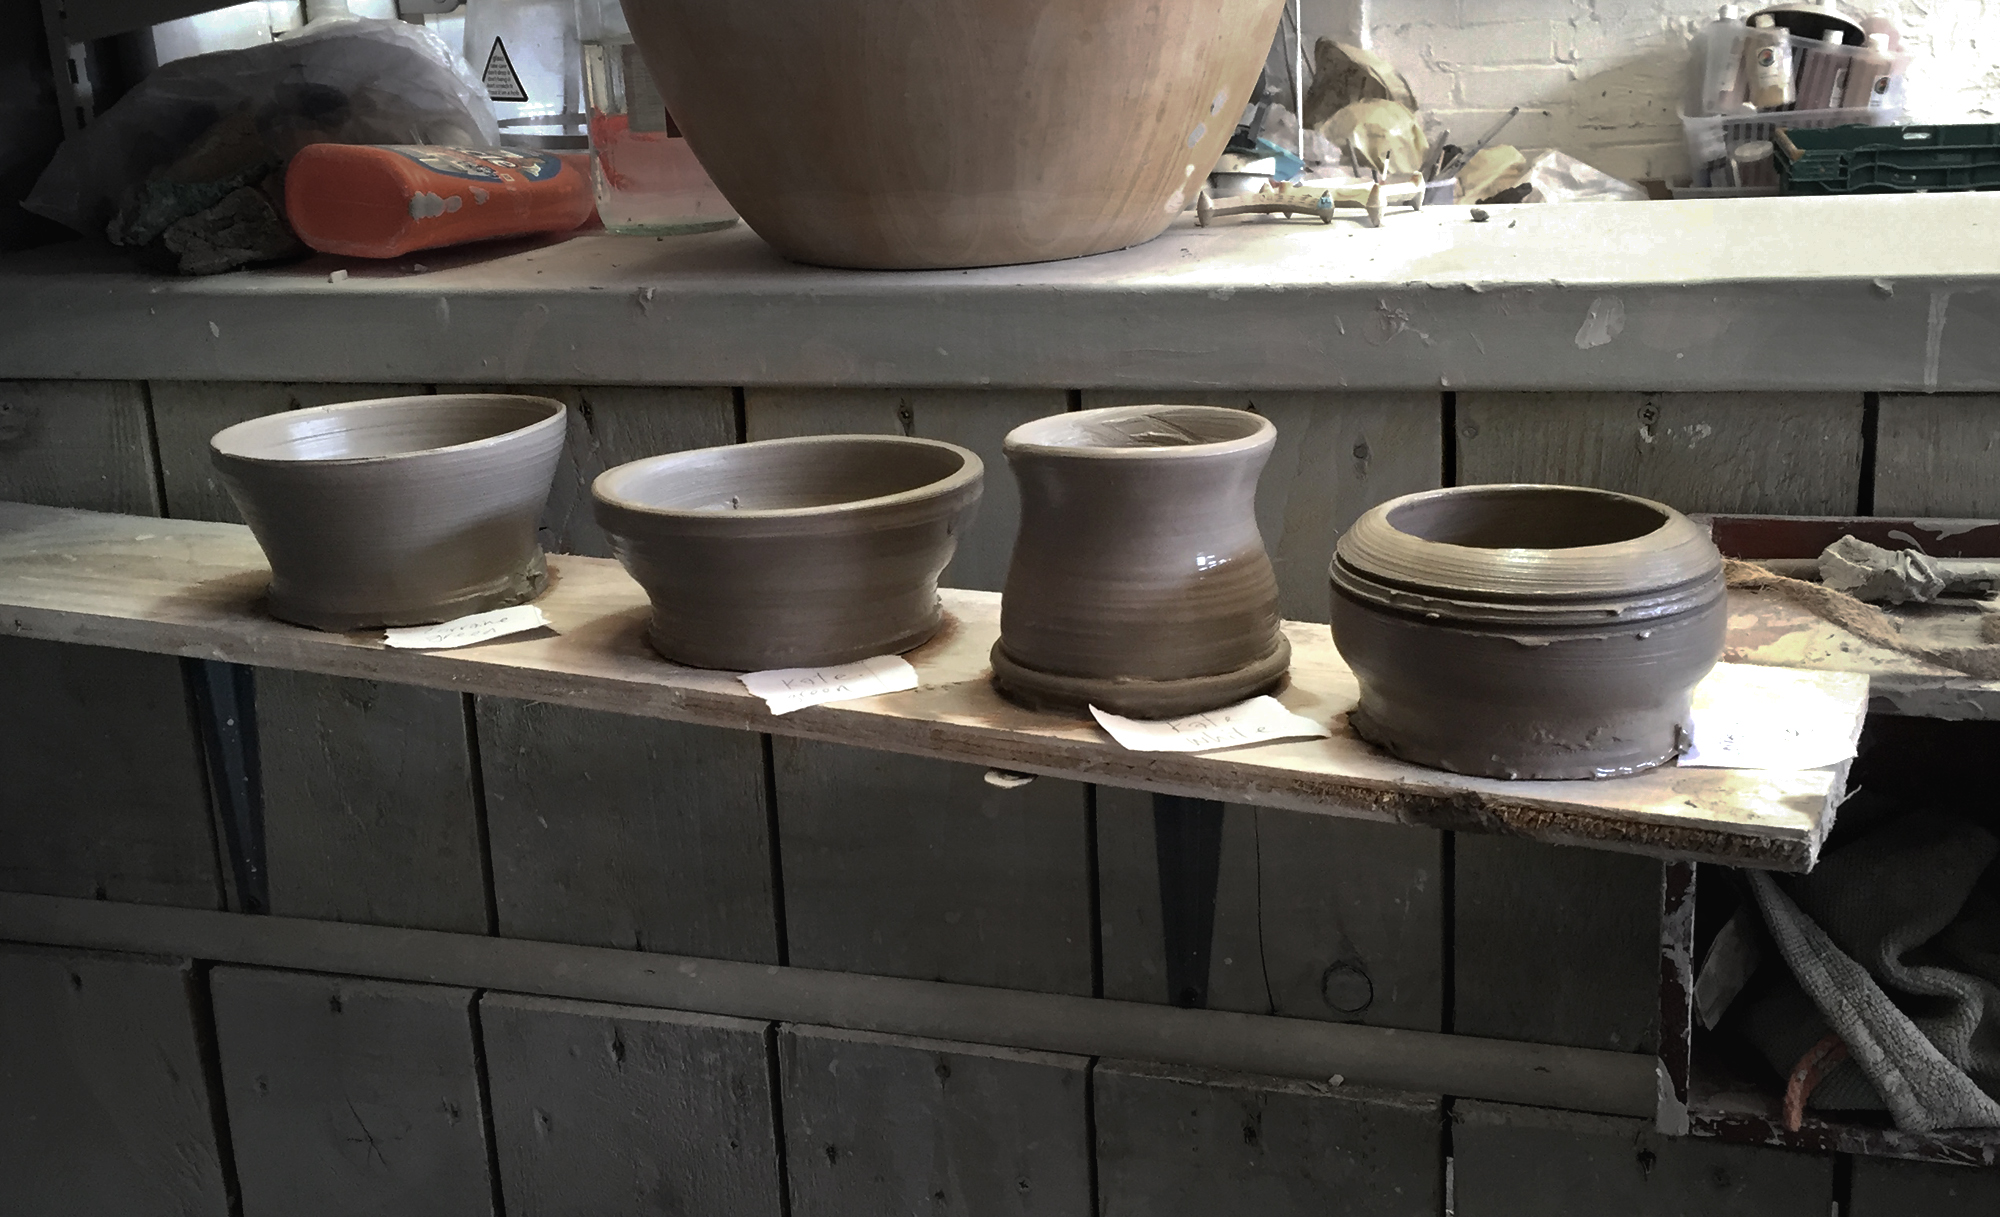 Photograph of four thrown pots on a shelf